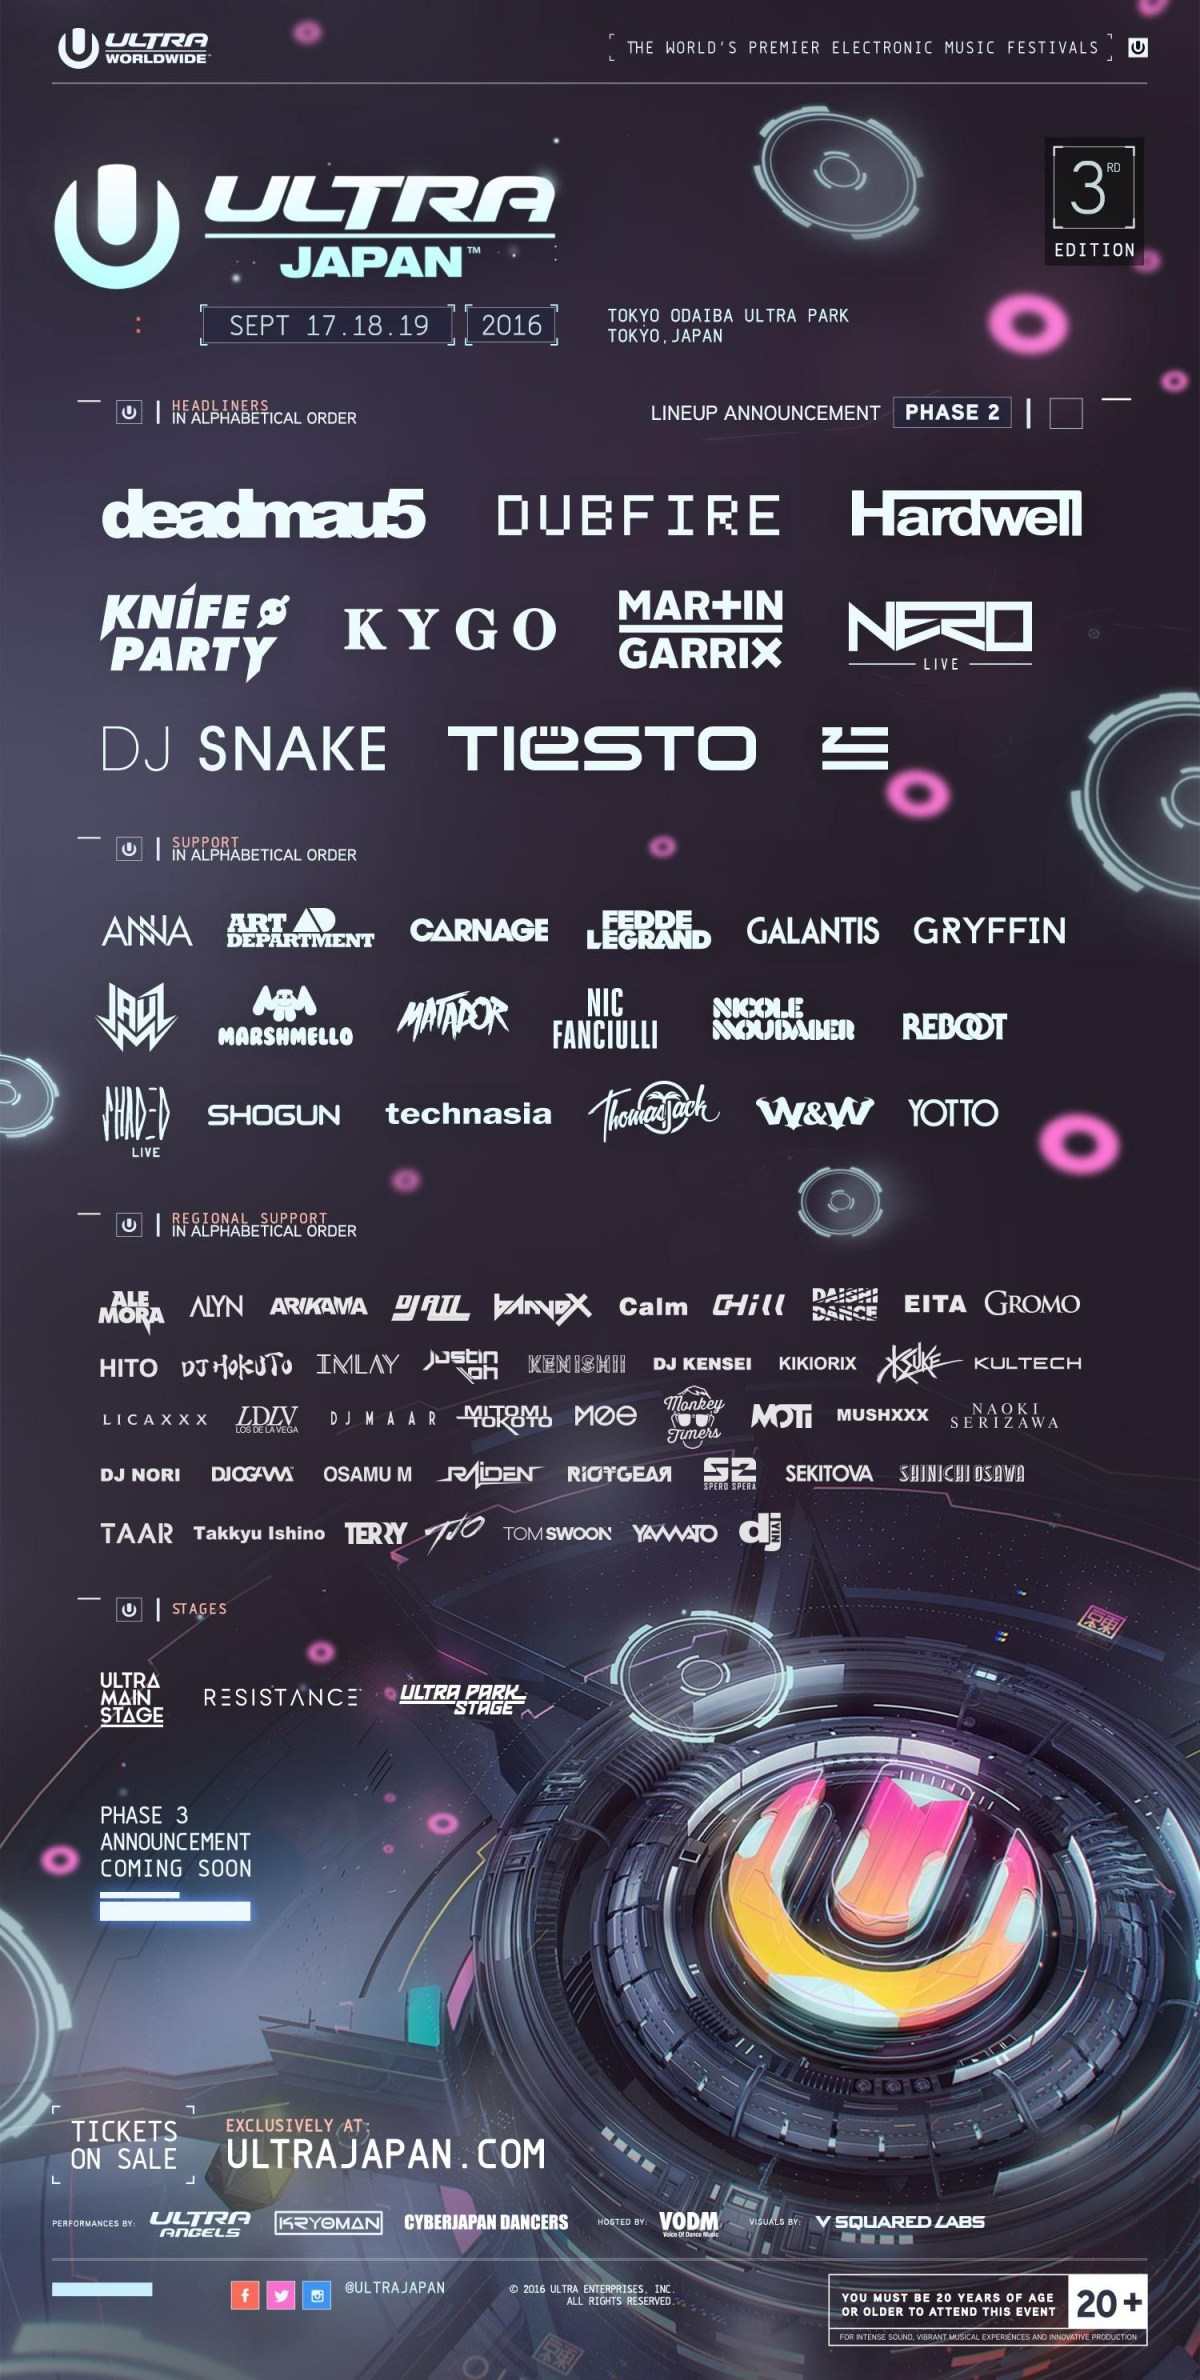 phase2LineUp